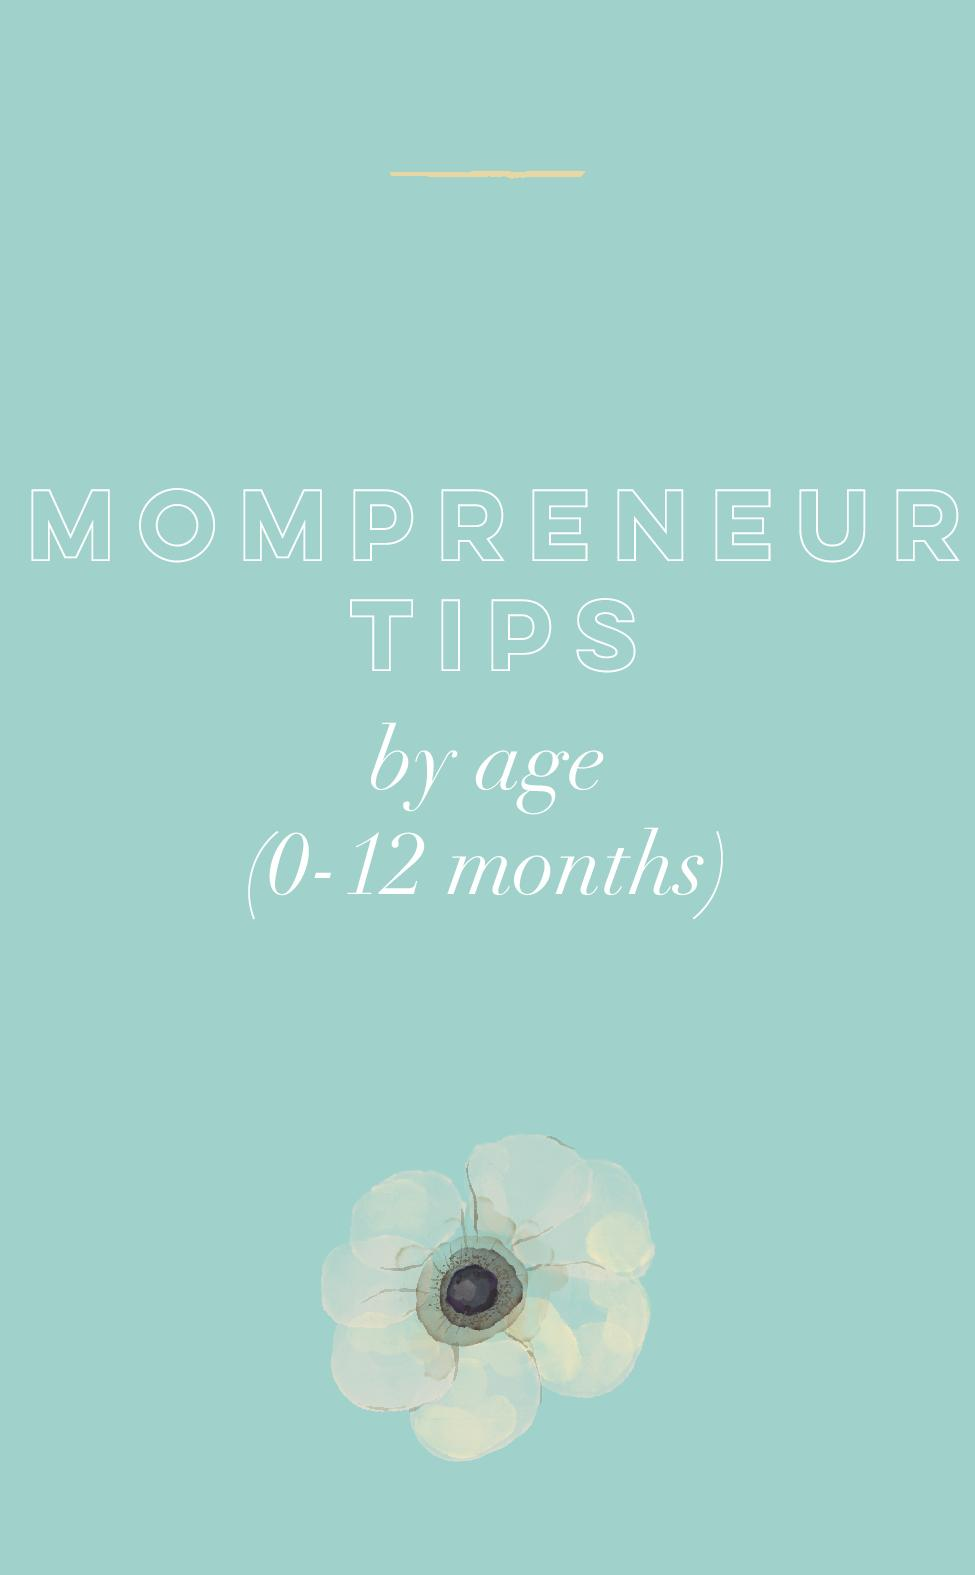 Mompreneur Tips By Age (0-12 months).jpg